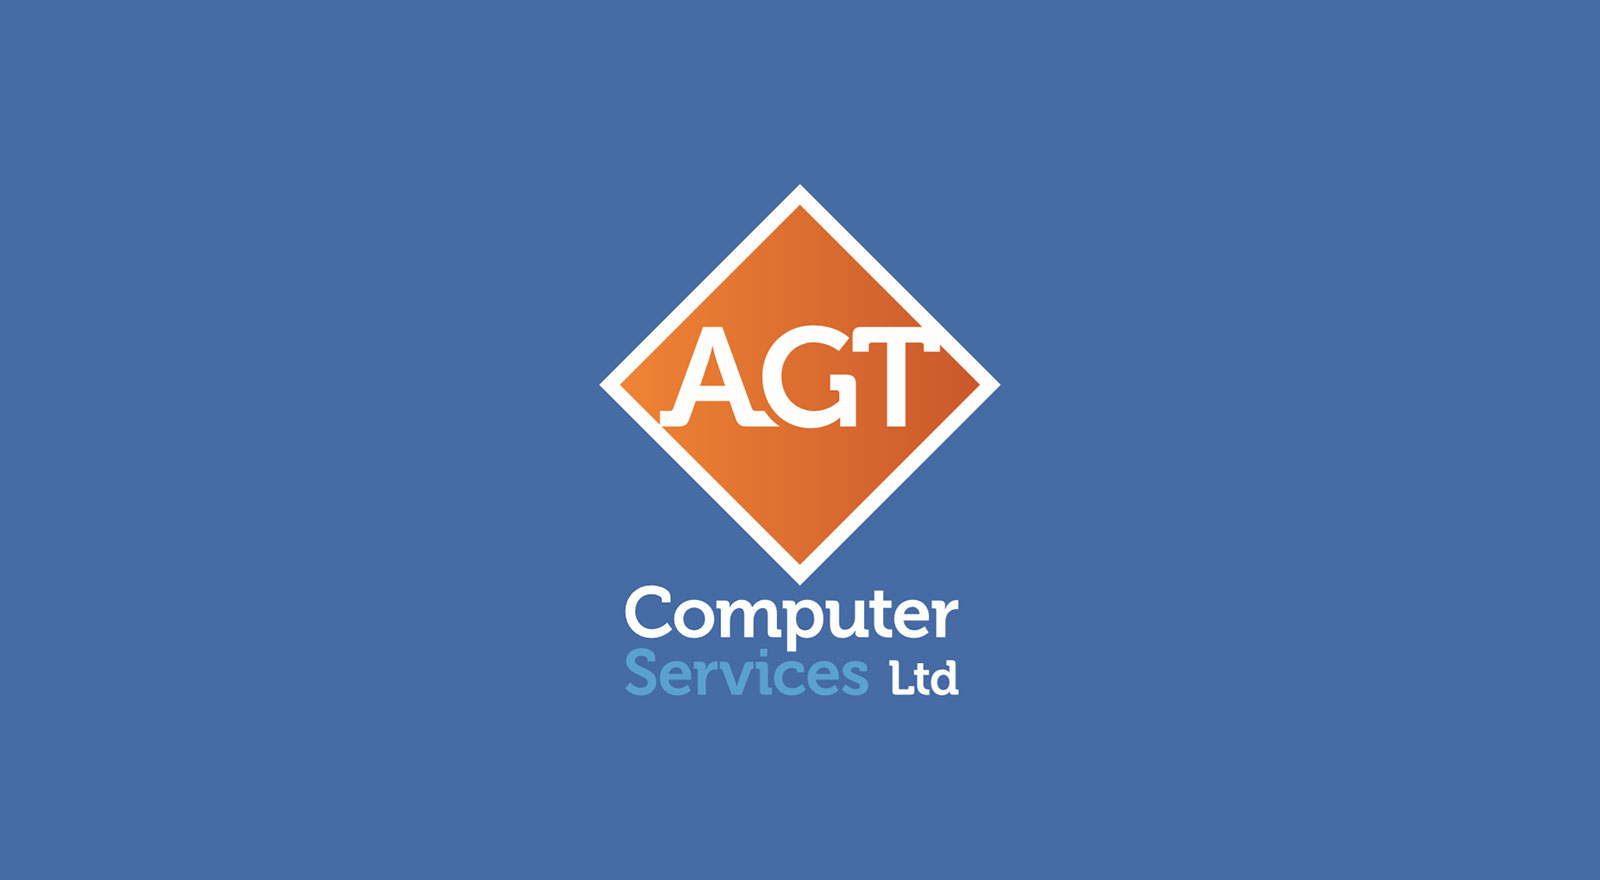 agt IT industry news